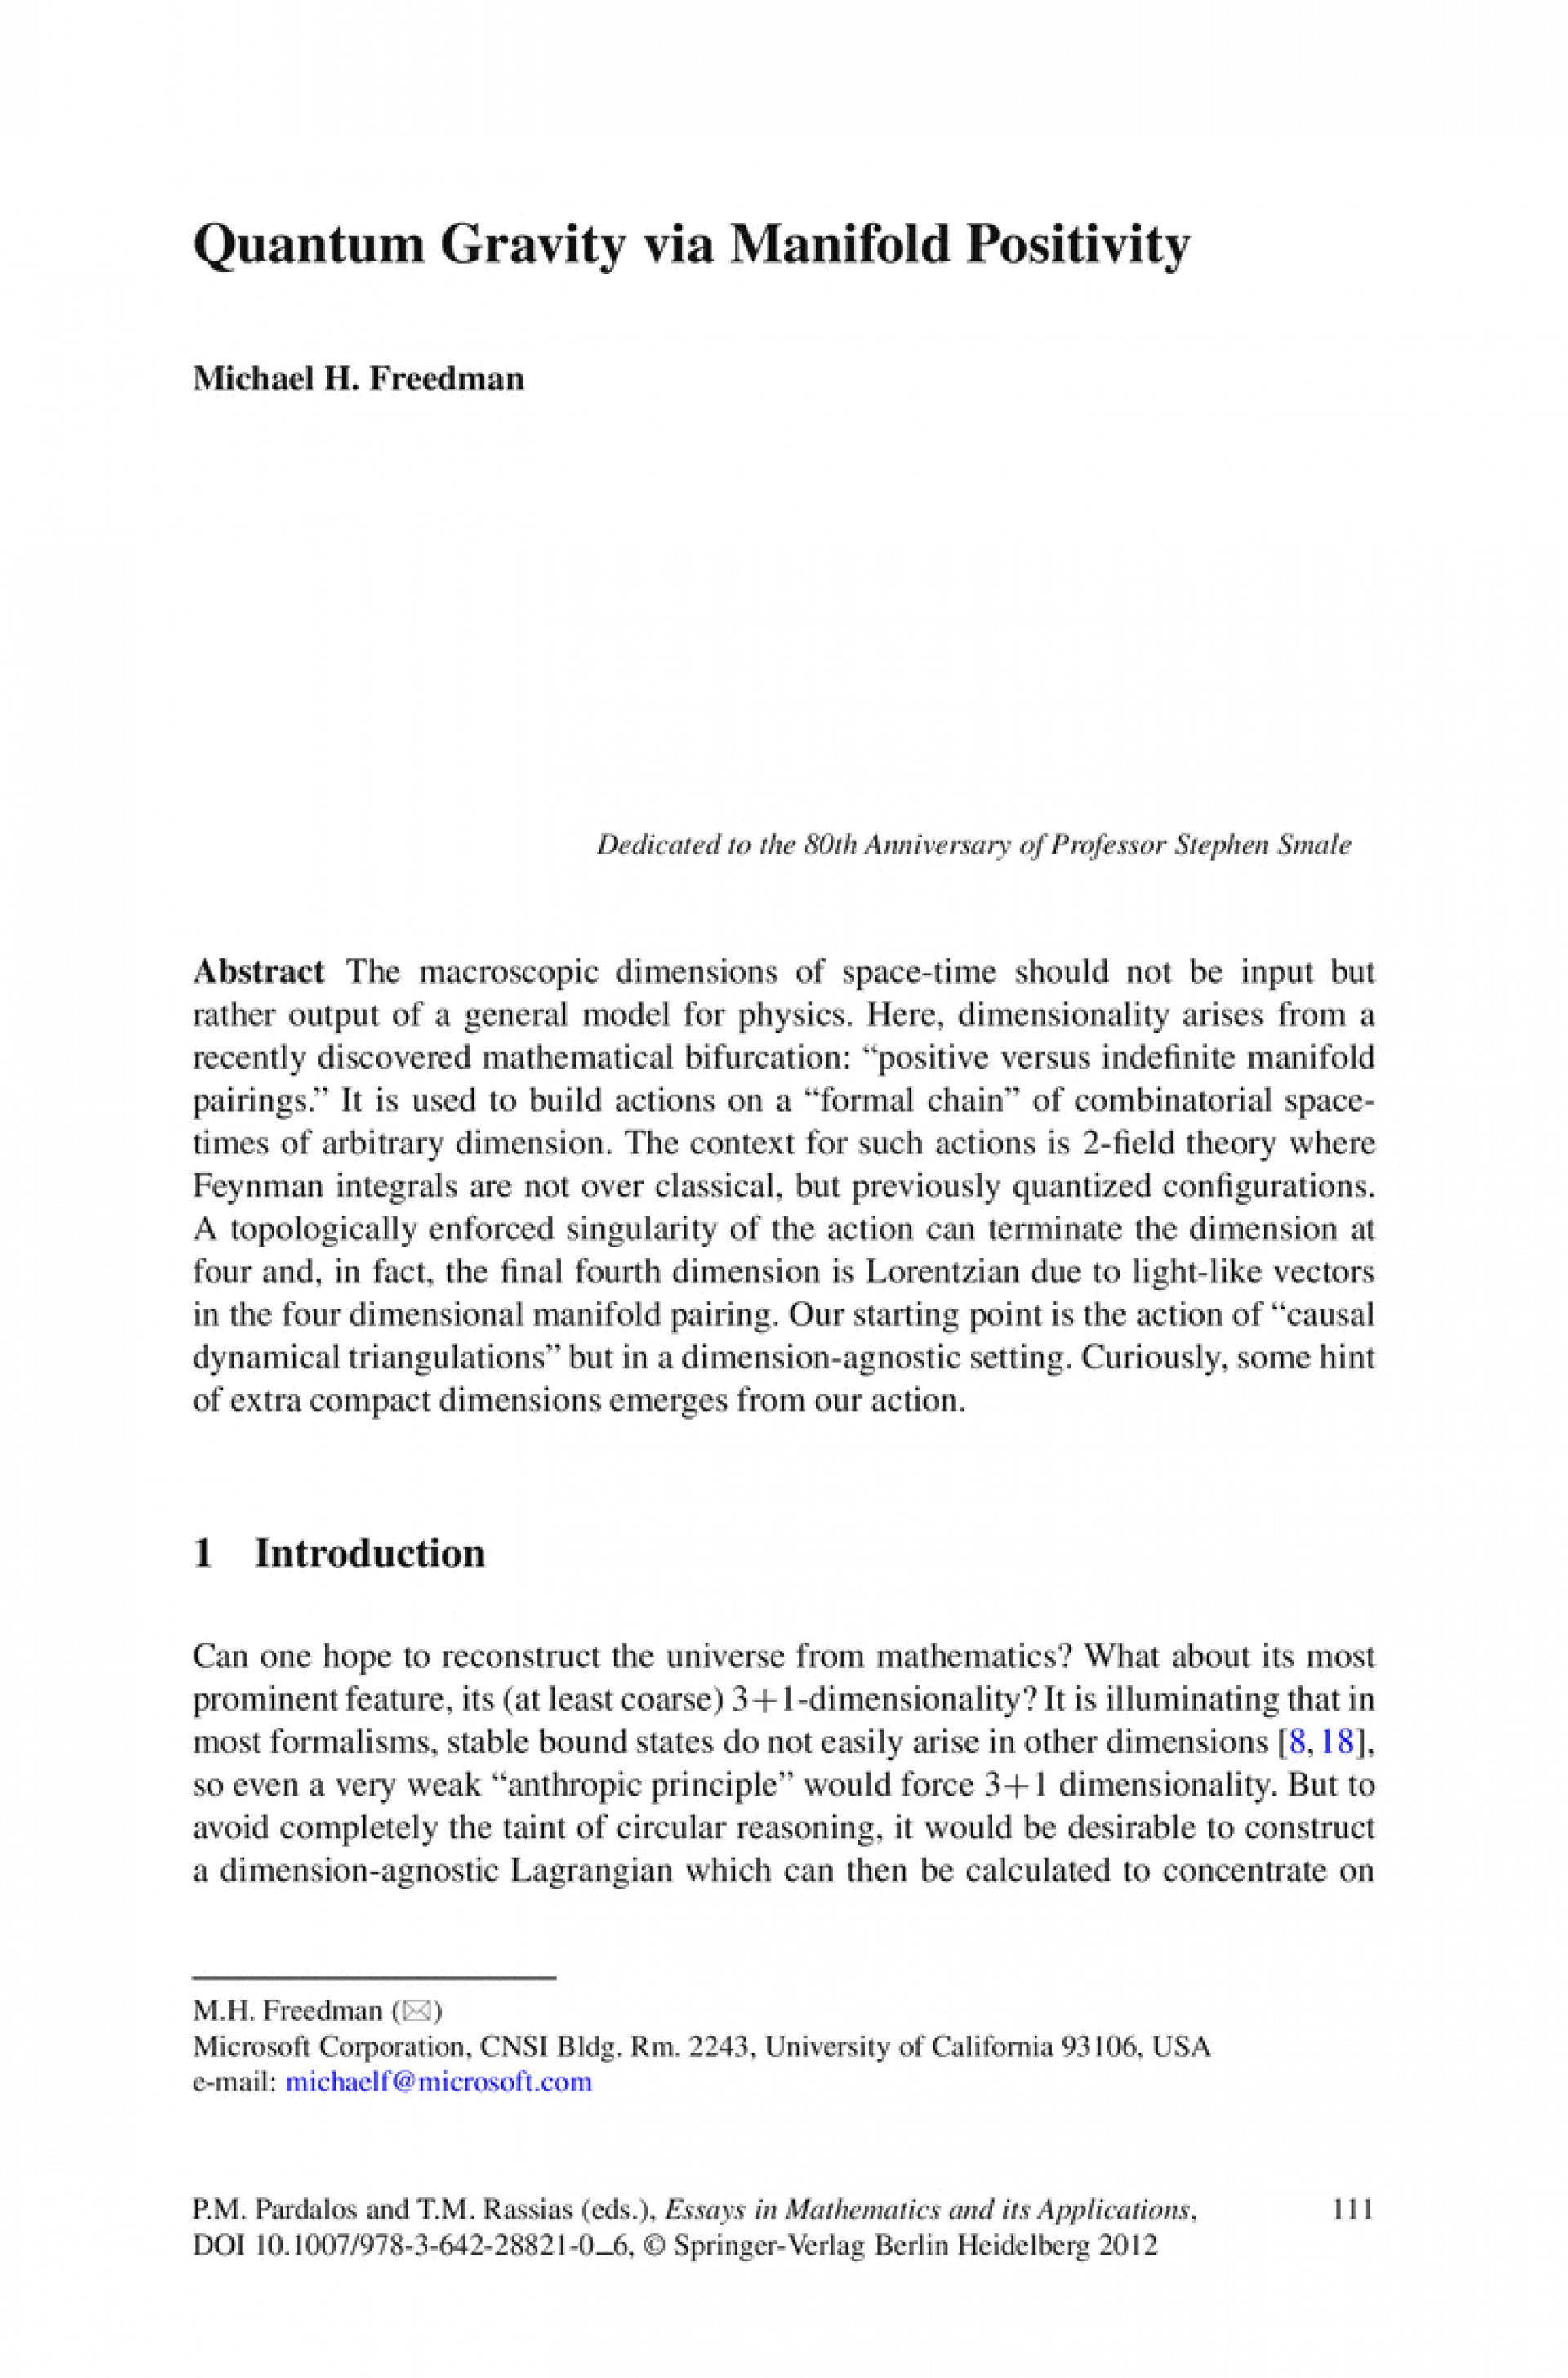 024 The Hook Essay In An What Iss Persuasive Purpose Of Narrative Expository Introduction English Sentence Reverse Argumentative Top Is A Good For About Crucible Odysseus Leadership 1920